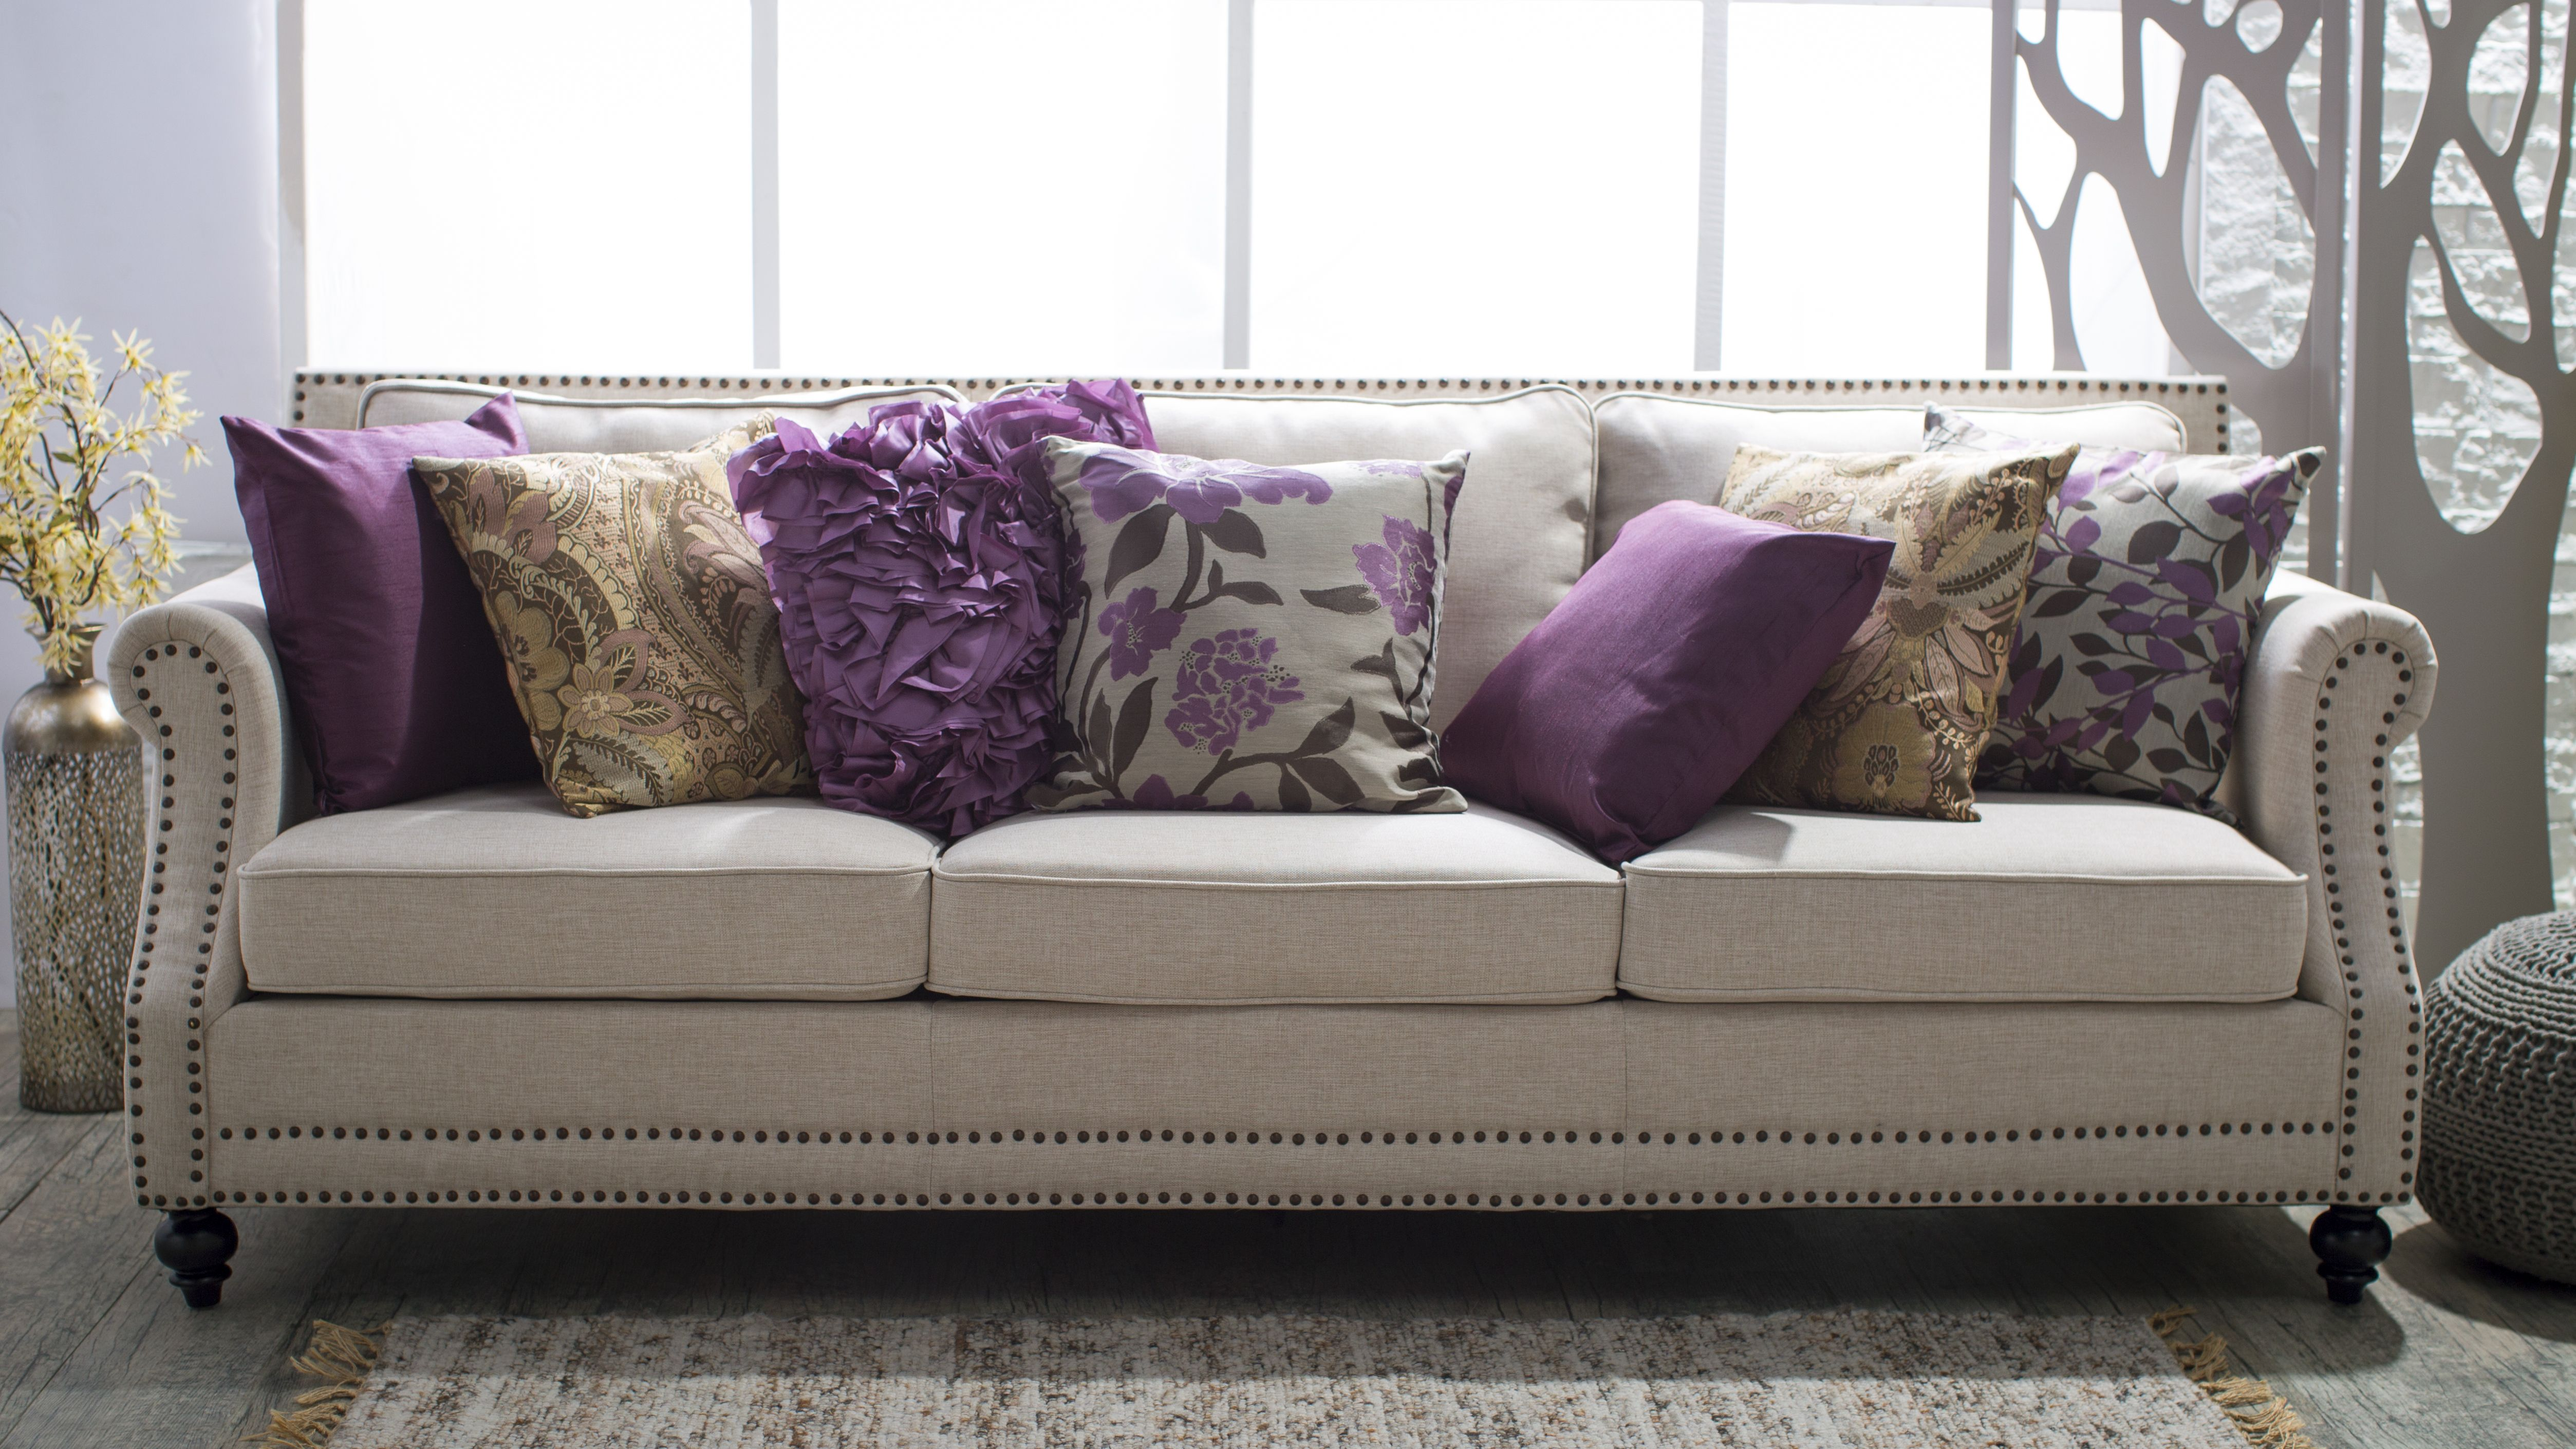 5 Ways To Decorate A Neutral Sofa With Throw Pillows Neutral Sofa Purple Sofa Purple Accent Pillows